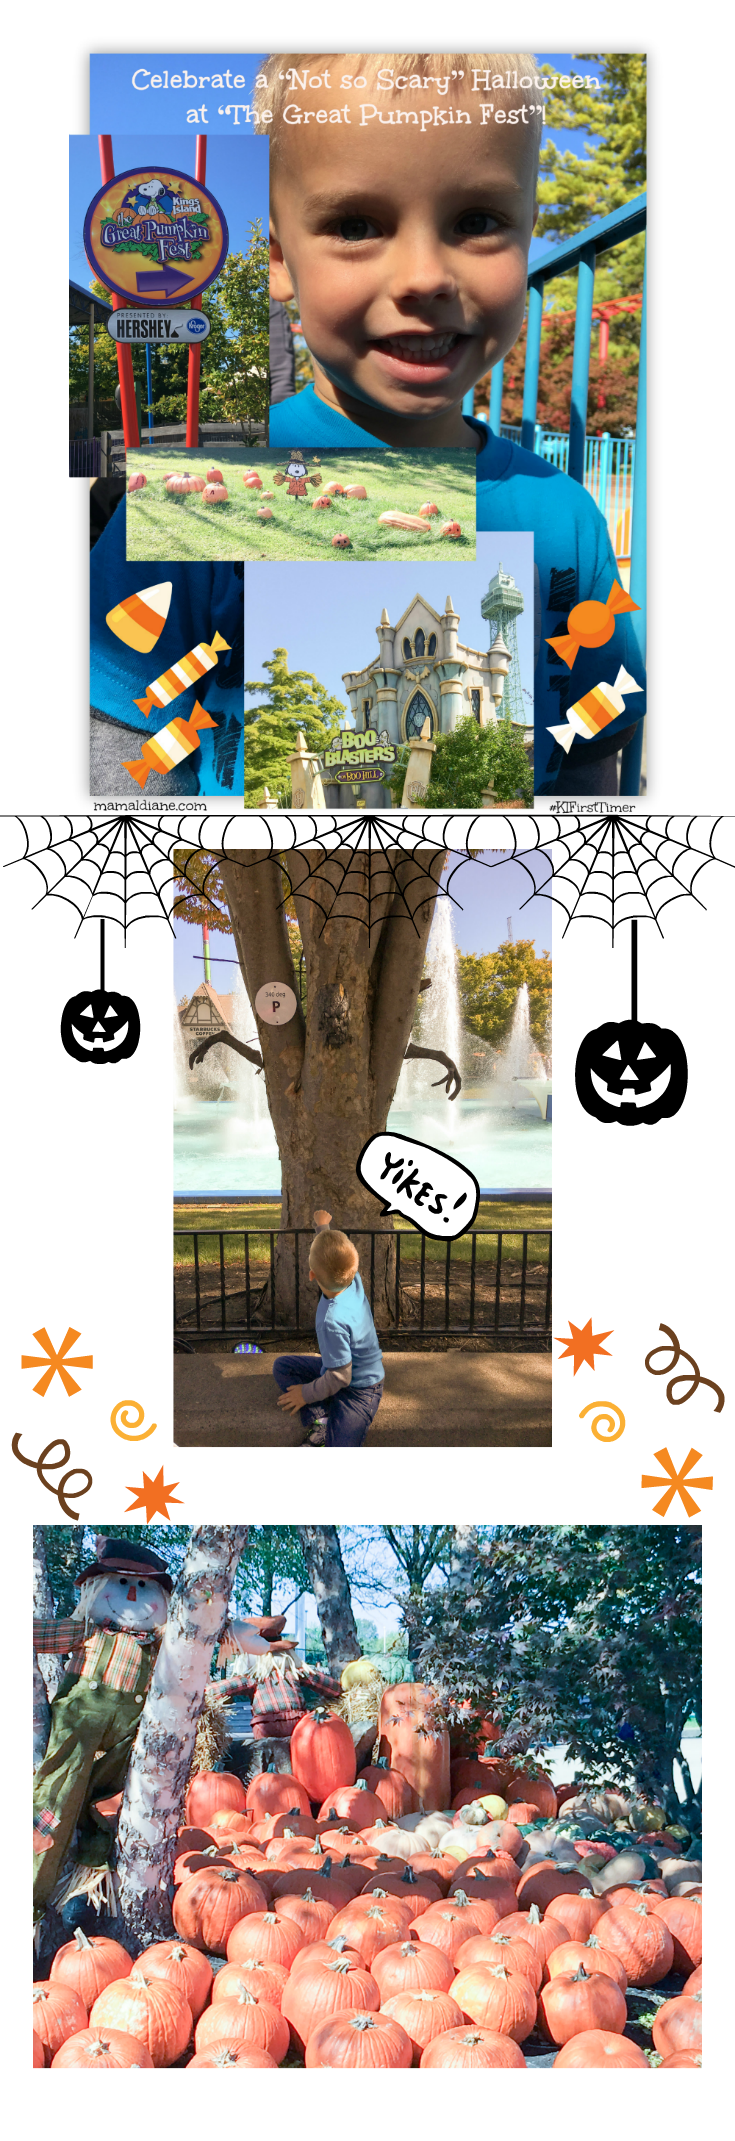 celebrate-a-not-so-scary-halloween-at-the-great-pumpkin-fest-long